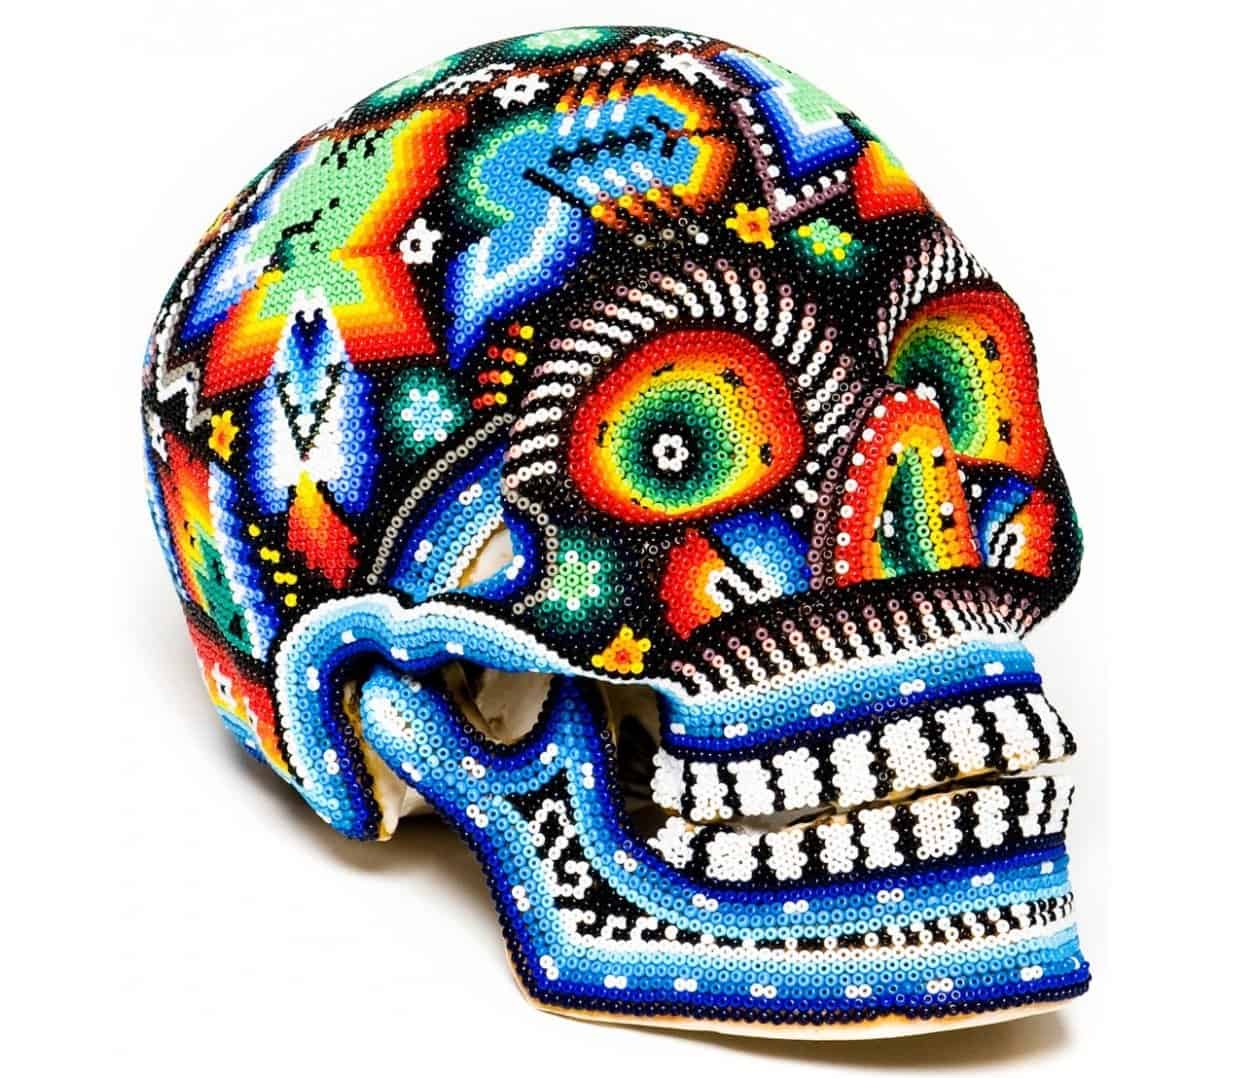 Day of the dead decor its the new halloween view in gallery day of the dead decor huichole skull thumb 630xauto 57081 day of the dead decor dailygadgetfo Choice Image